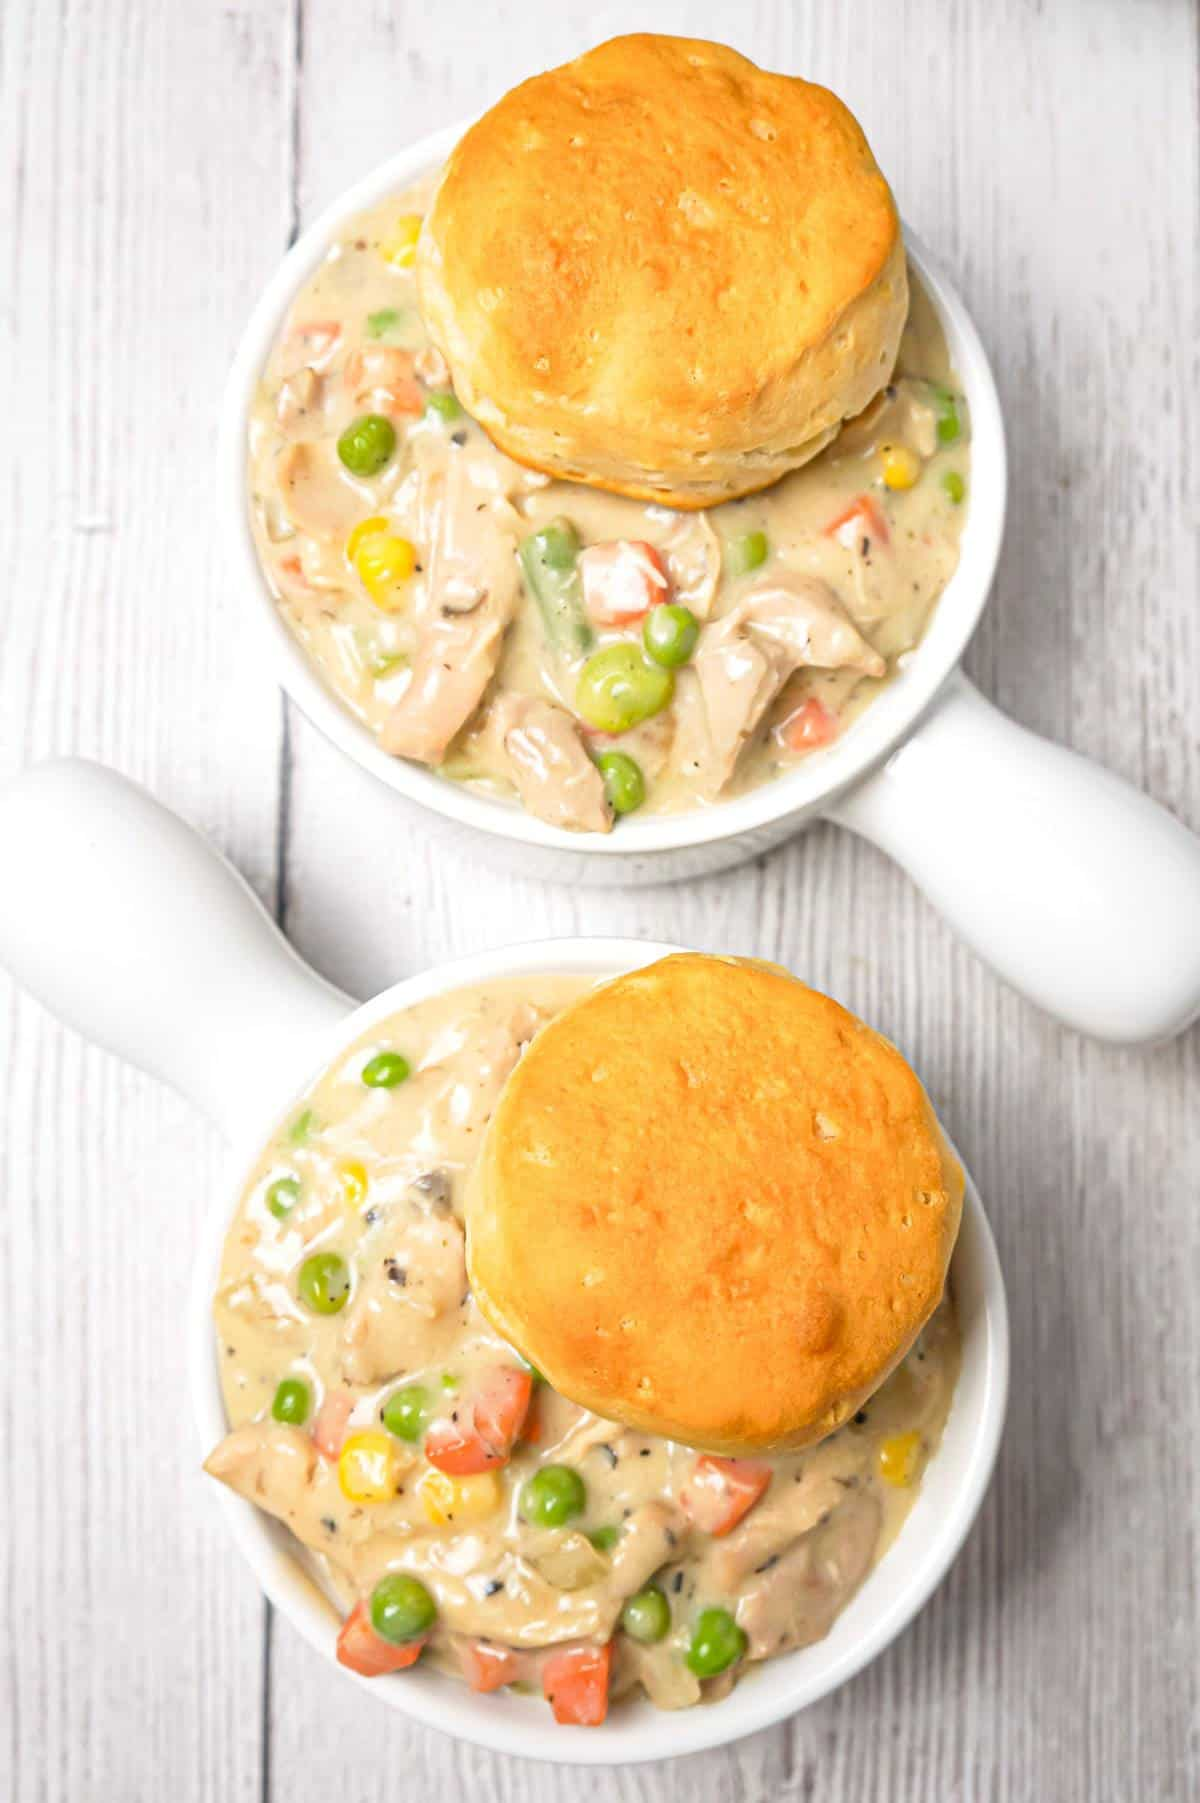 Crock Pot Chicken Pot Pie is an easy slow cooker dinner recipe made with boneless, skinless chicken thighs, cream of mushroom soup, cream of chicken soup and mixed veggies and topped with Pillsbury biscuits.